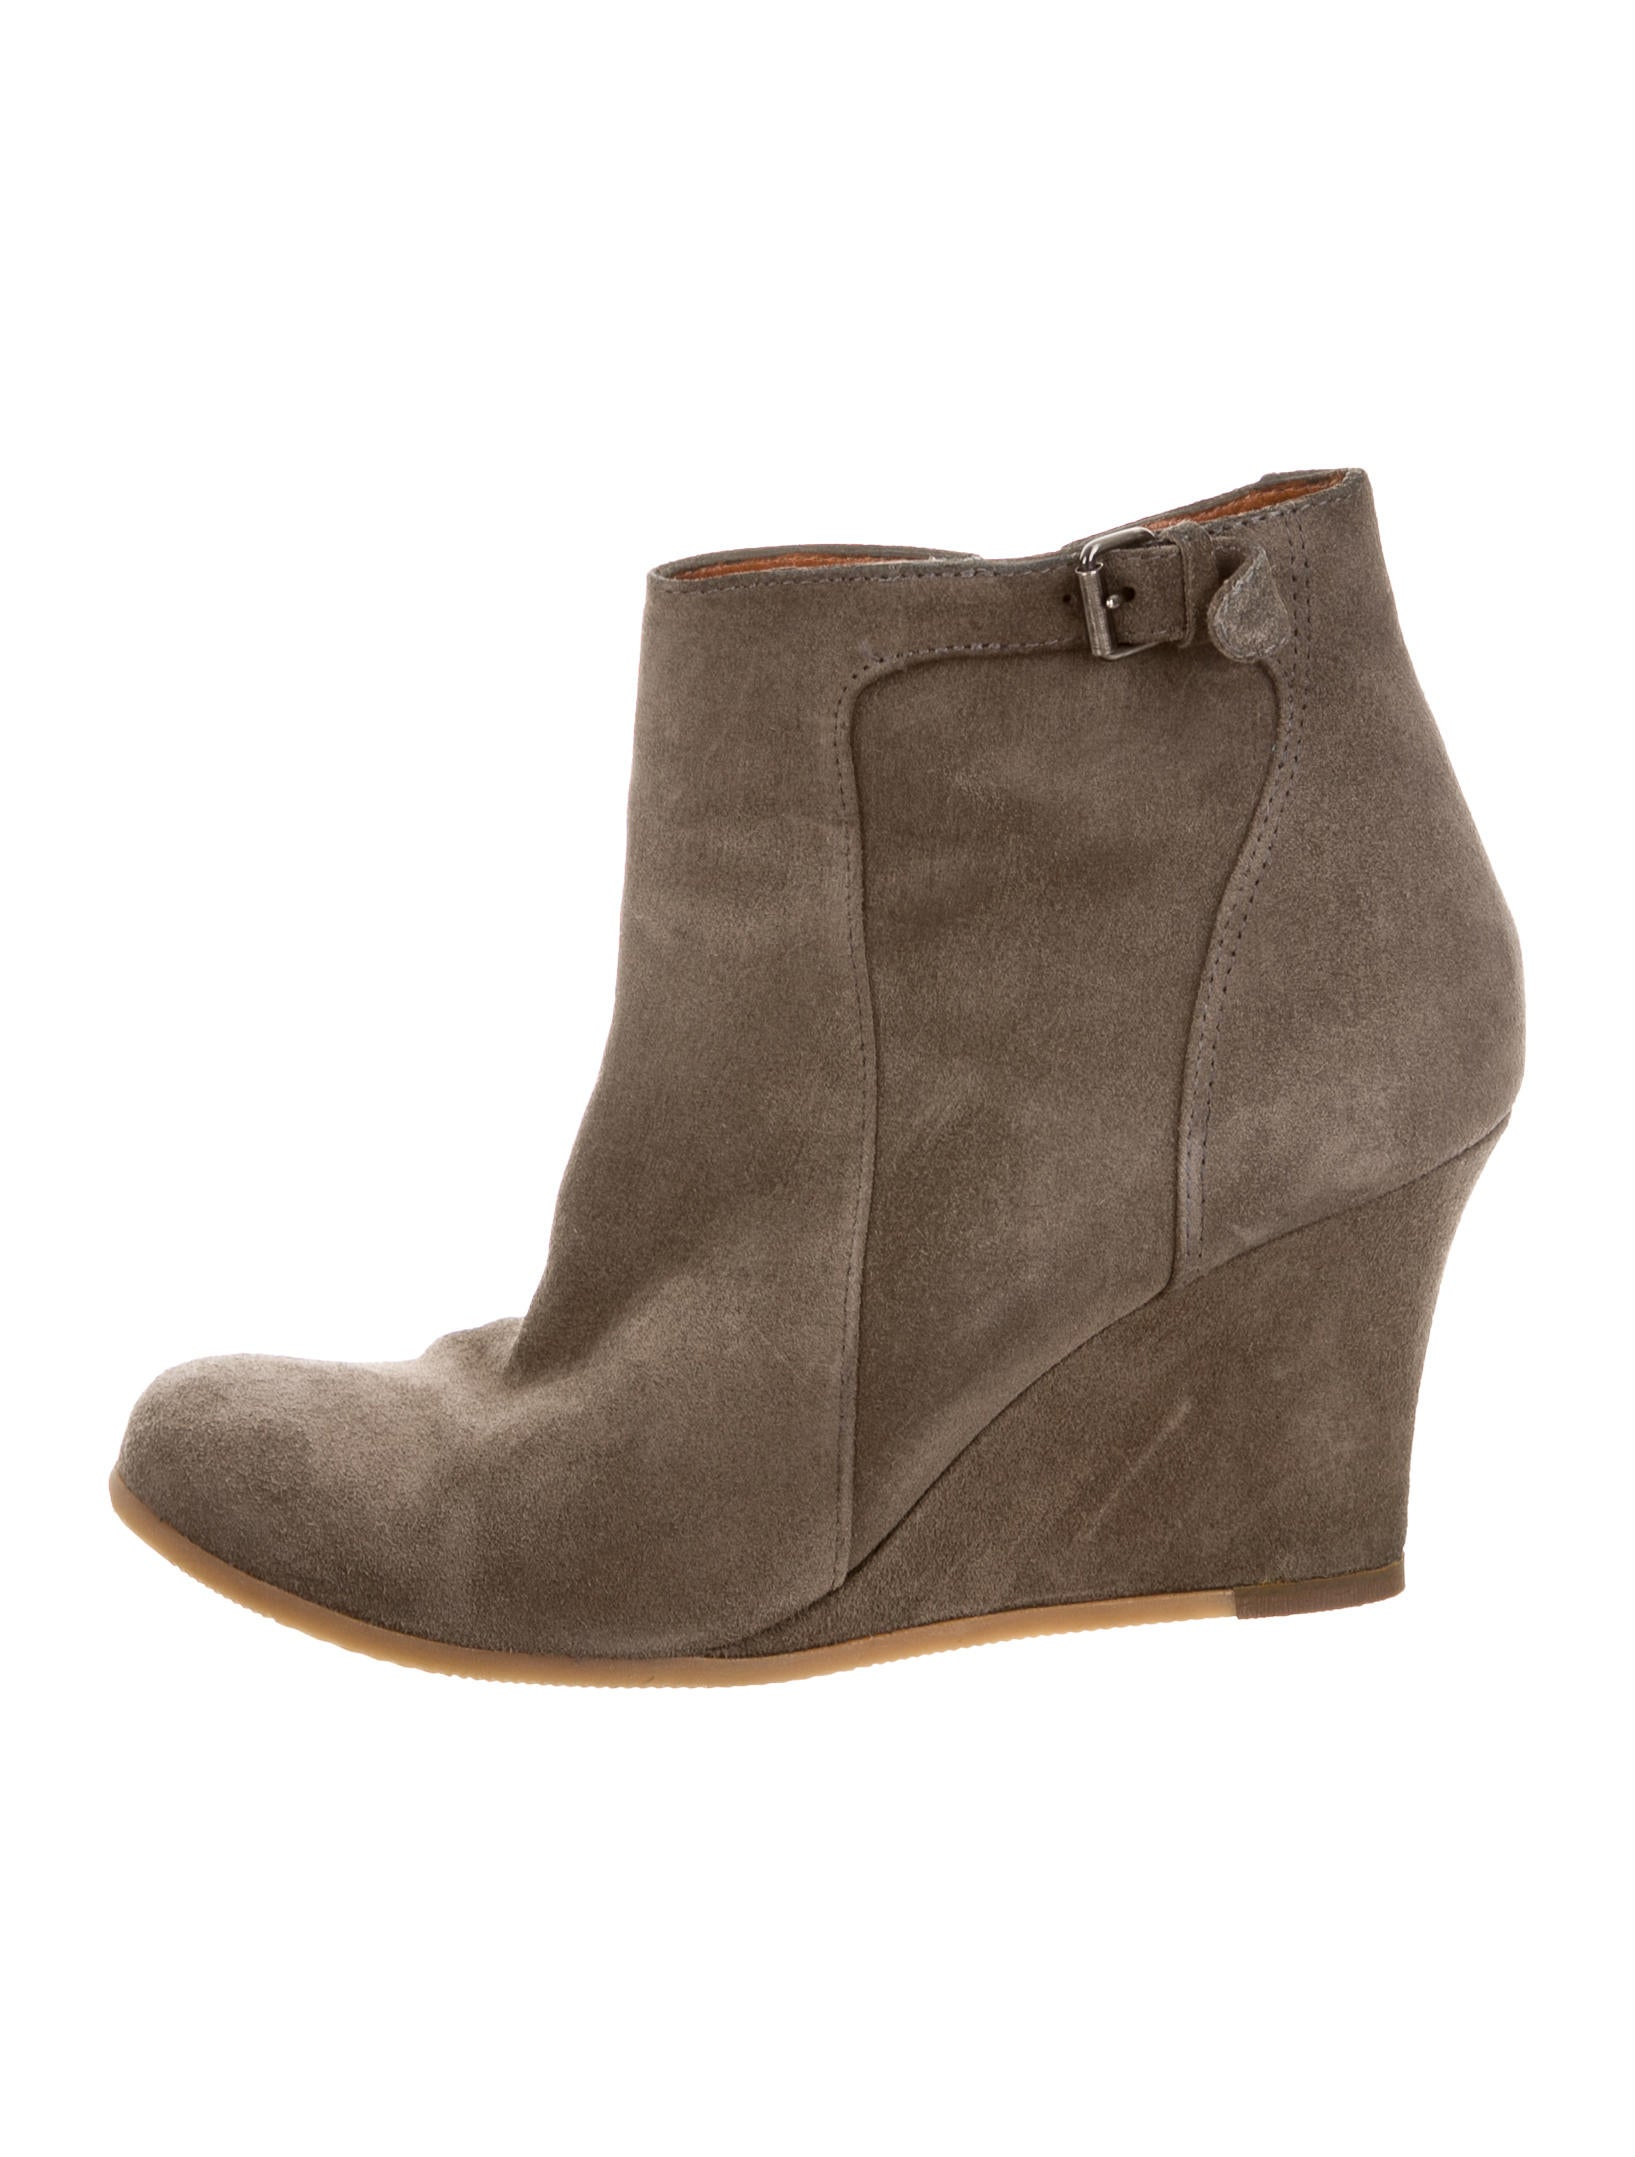 lanvin suede wedge boots shoes lan61651 the realreal